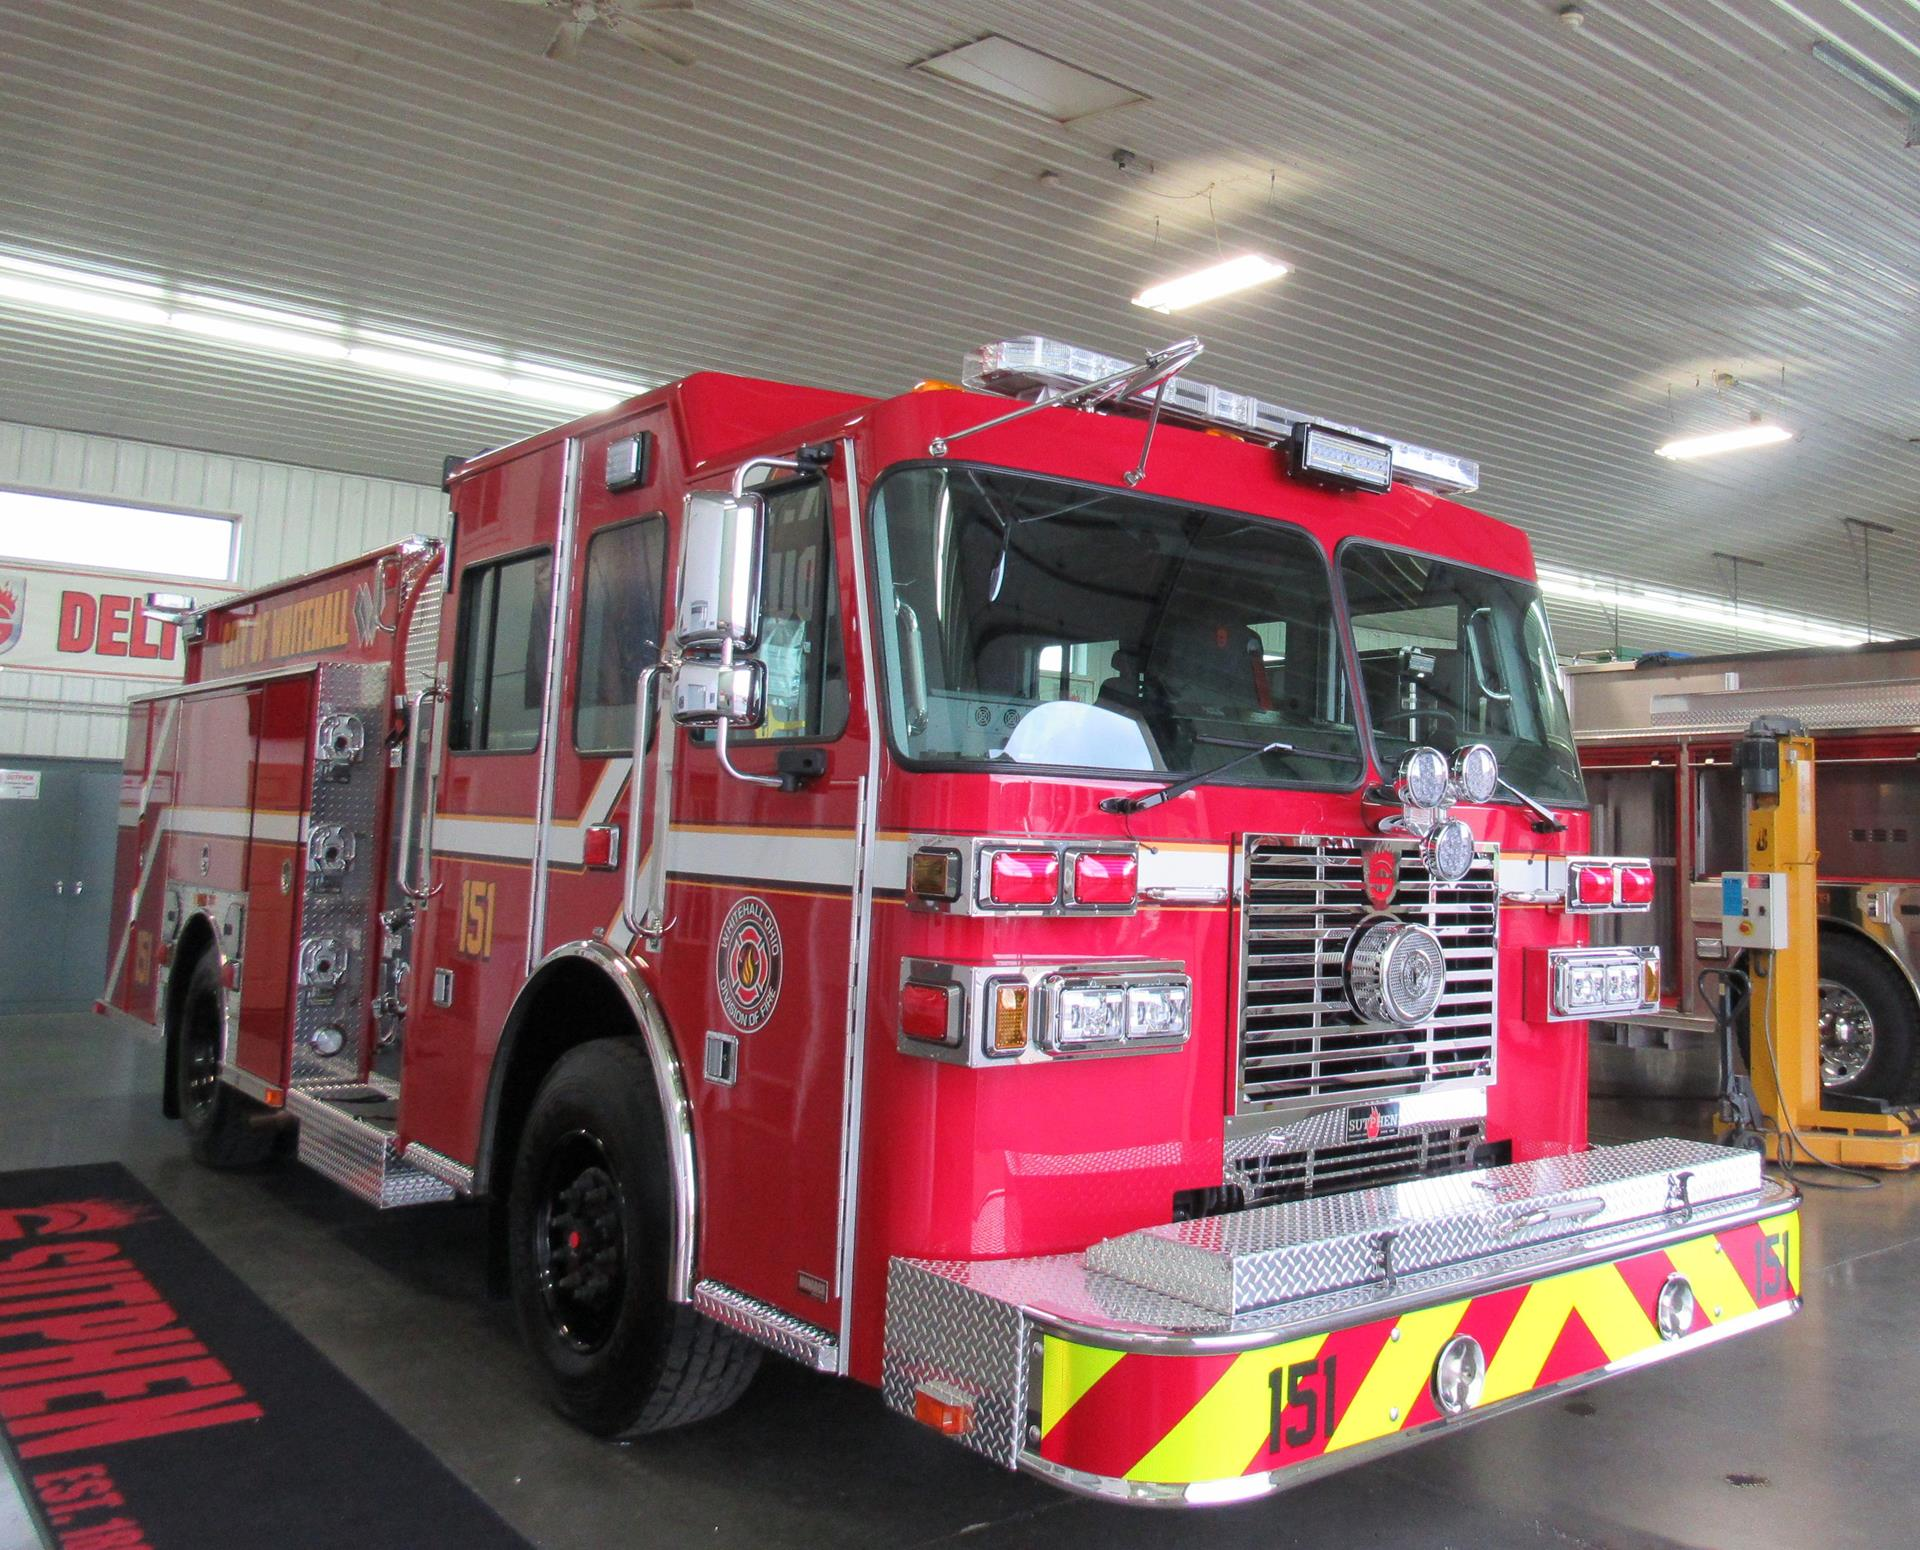 Whitehall Division of Fire Officer Side